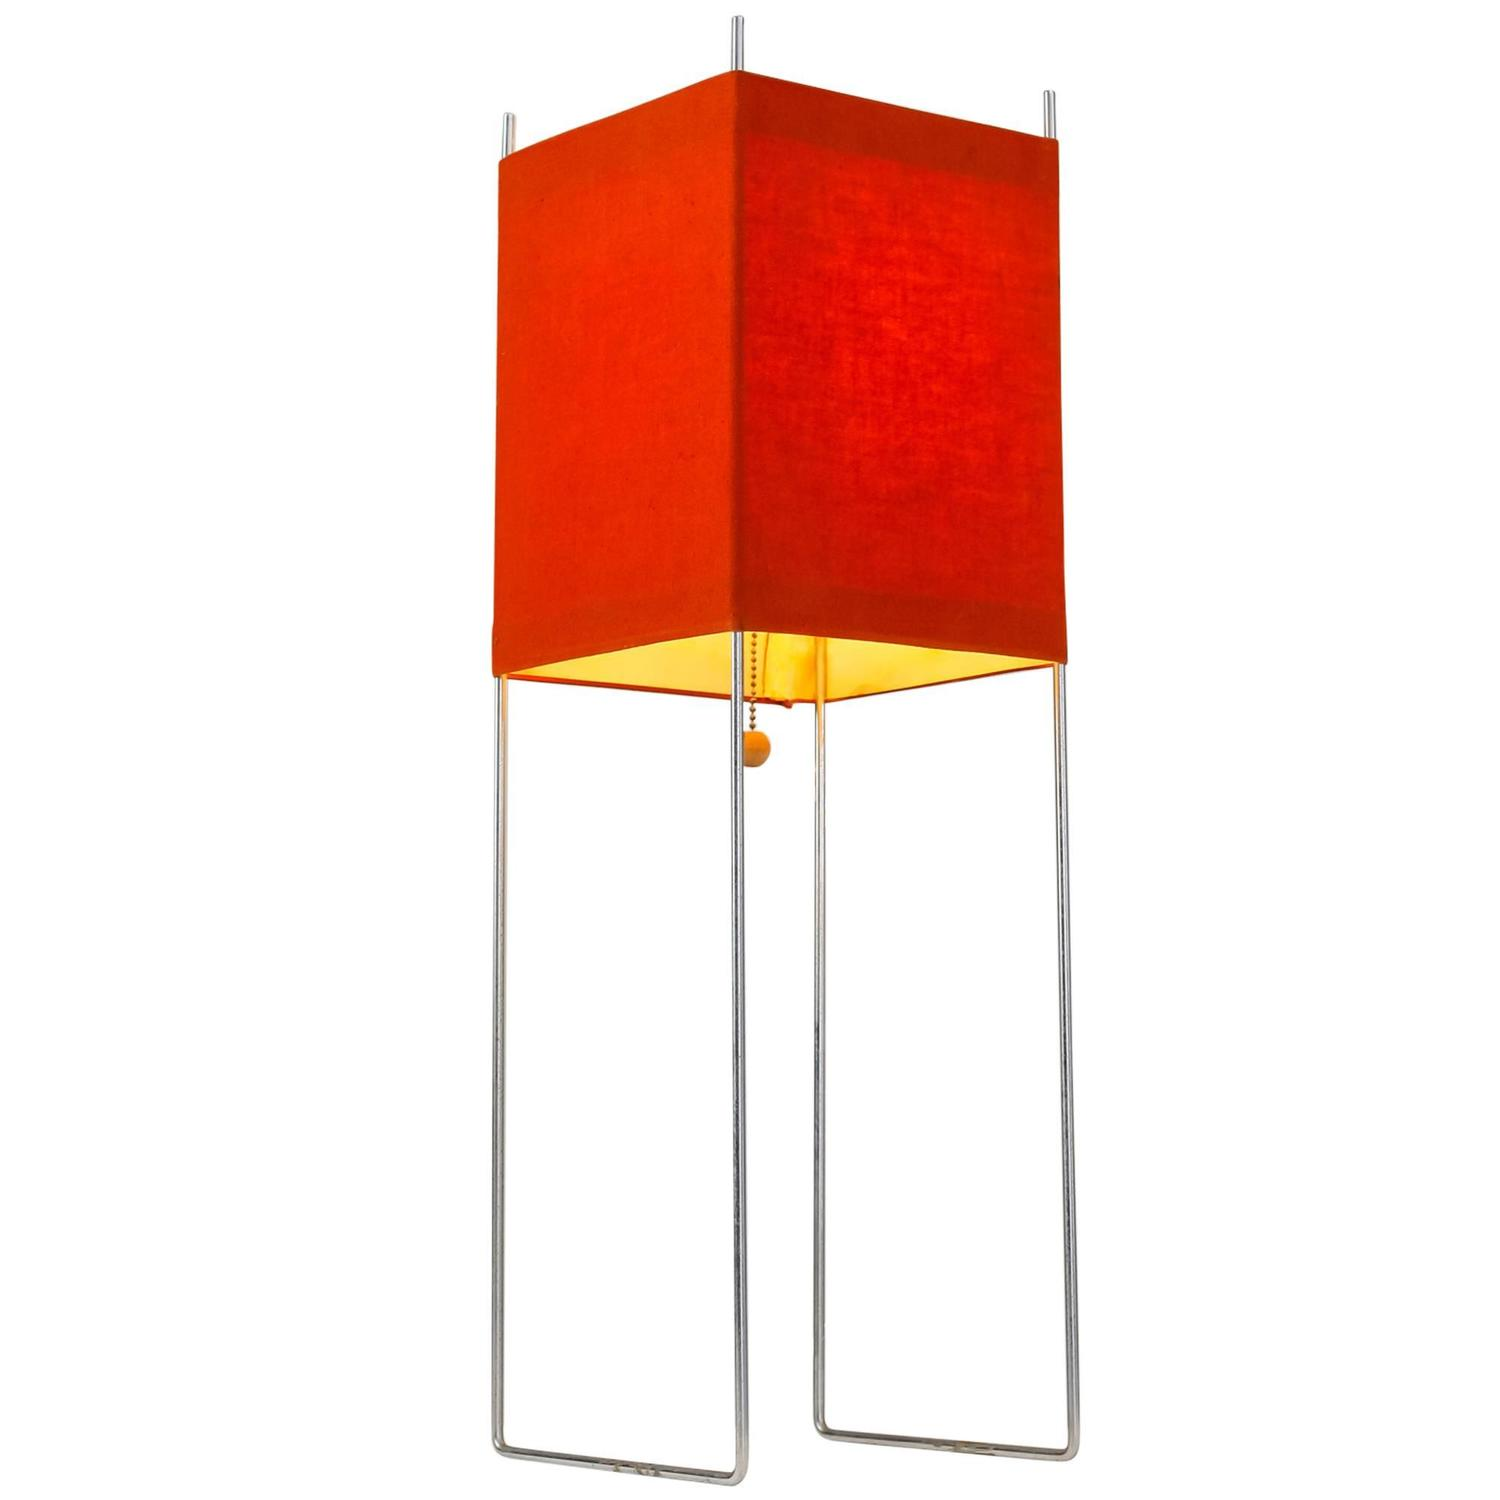 George Nelson Red Kite Table Or Floor Lamp, USA, 1970s For Sale At 1stdibs